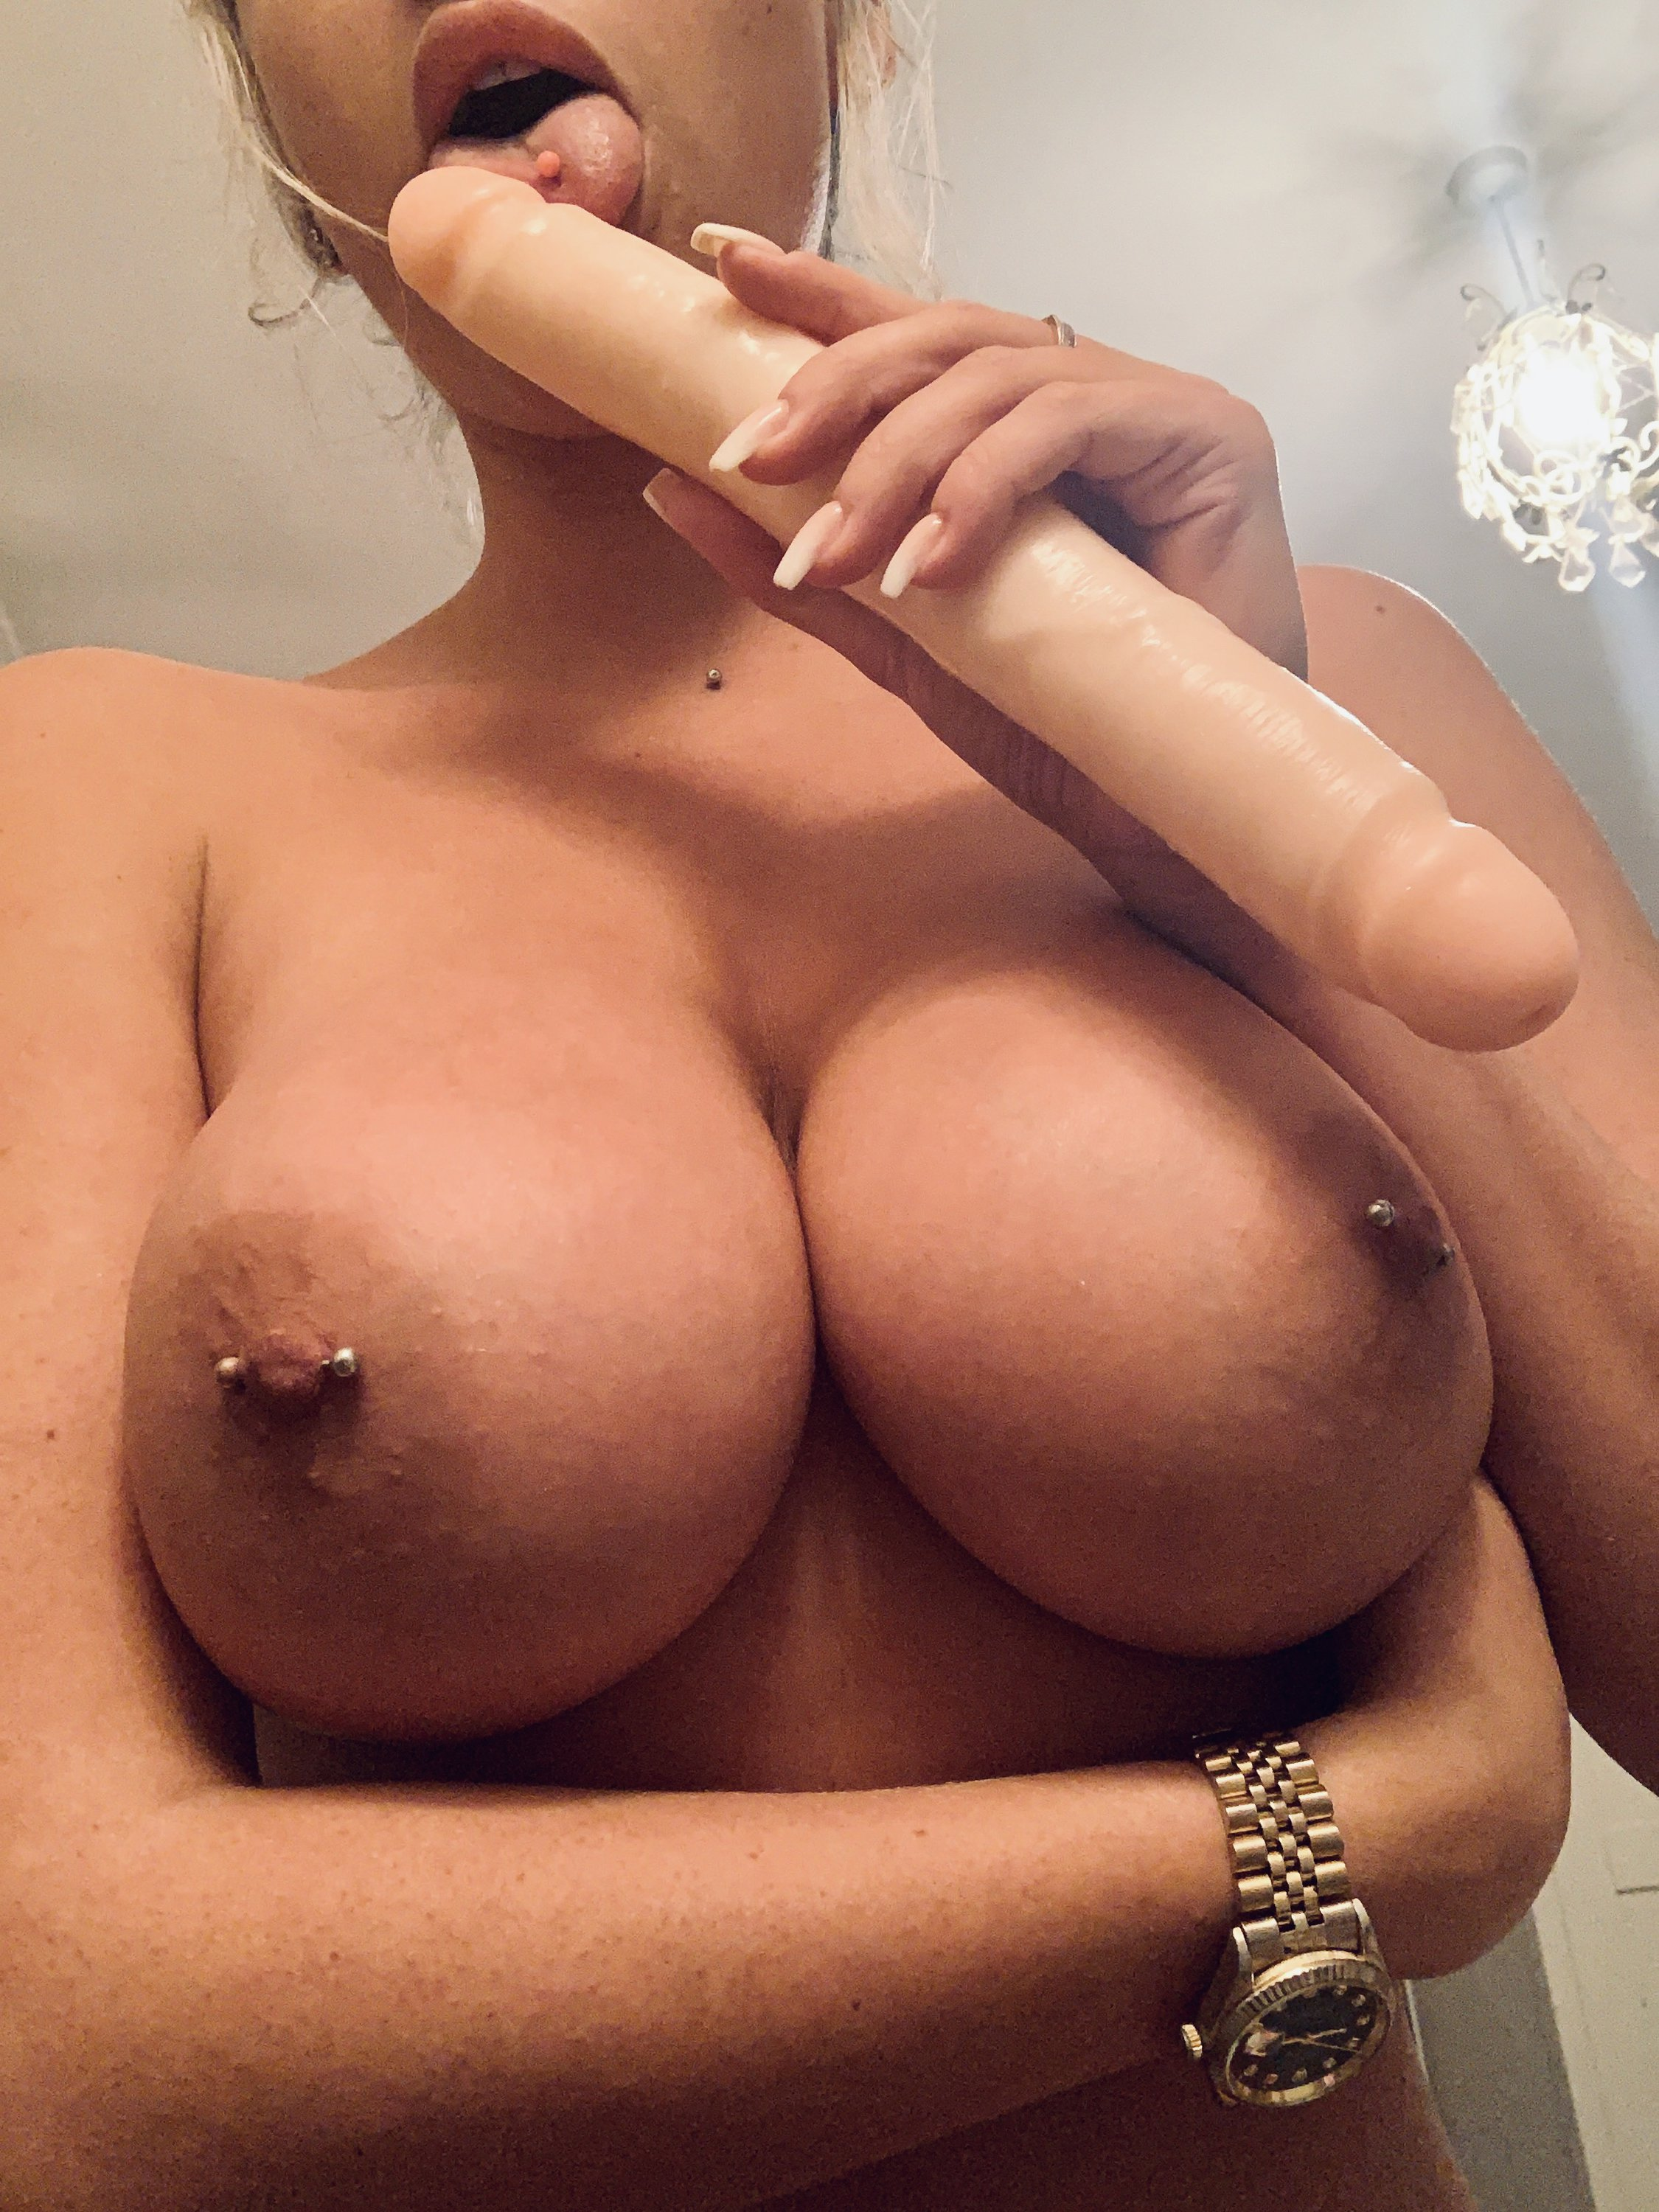 Lucy Nicholson Leaked 0123